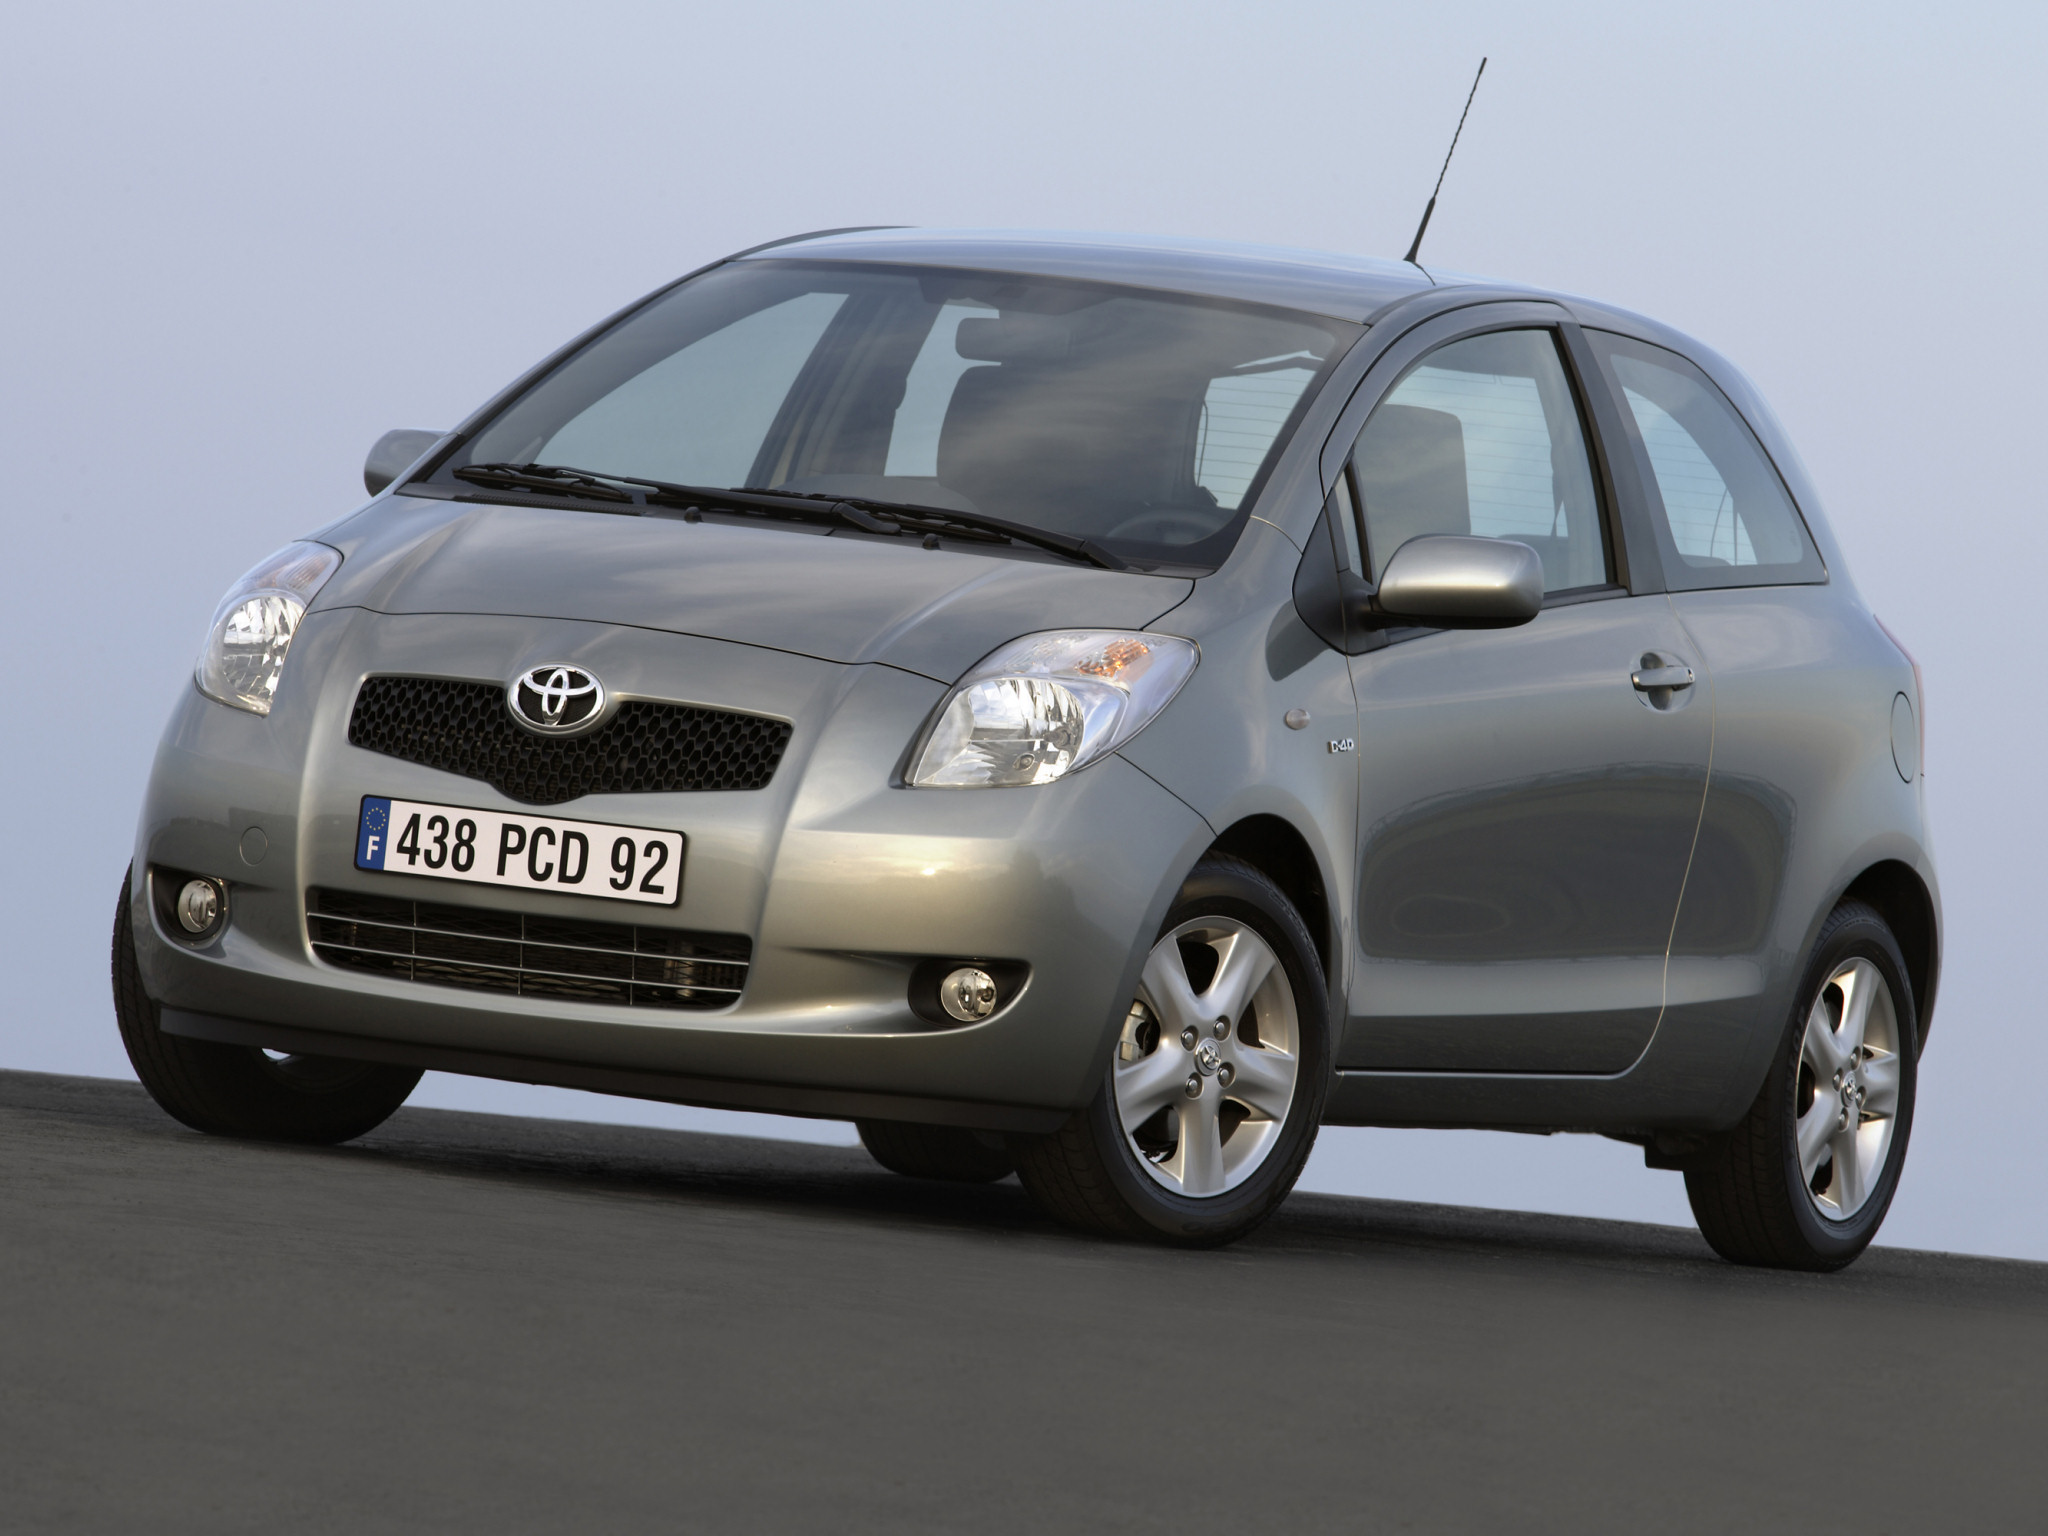 Le Meilleur Car In Pictures – Car Photo Gallery » Toyota Yaris 2005 Ce Mois Ci